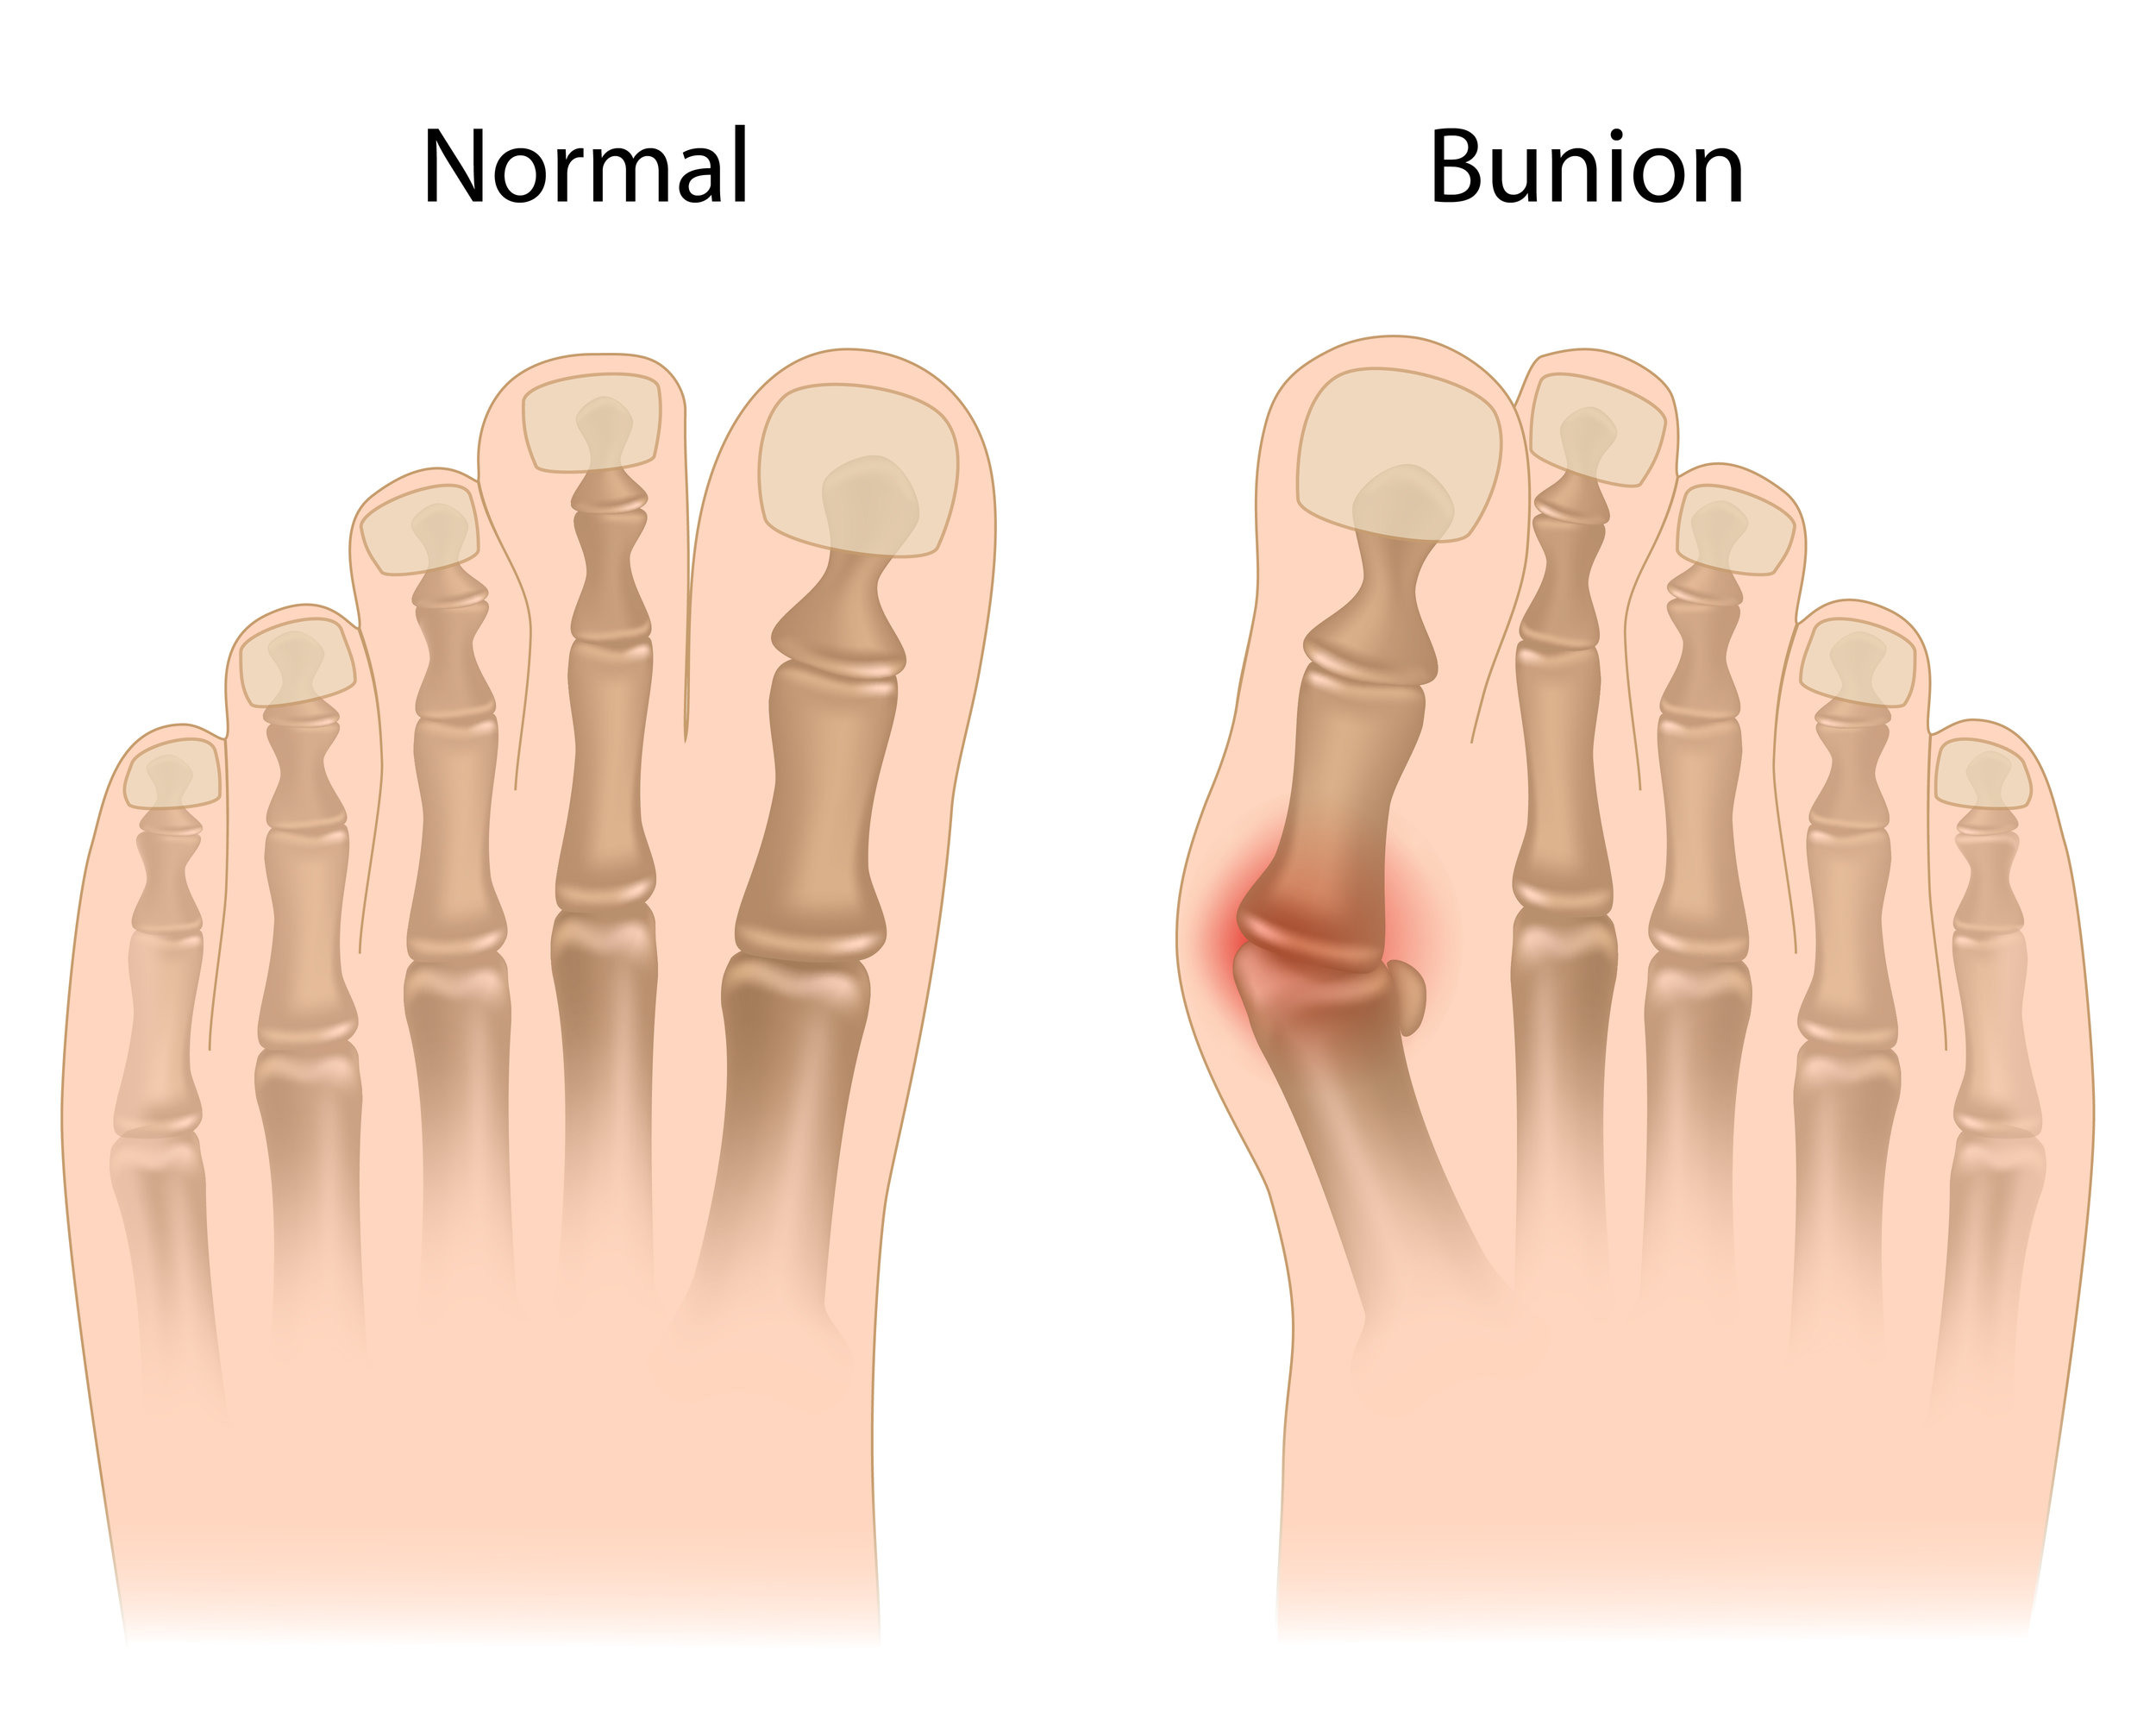 Bunion treatment by Bunion Doctor in Fairfax, VA